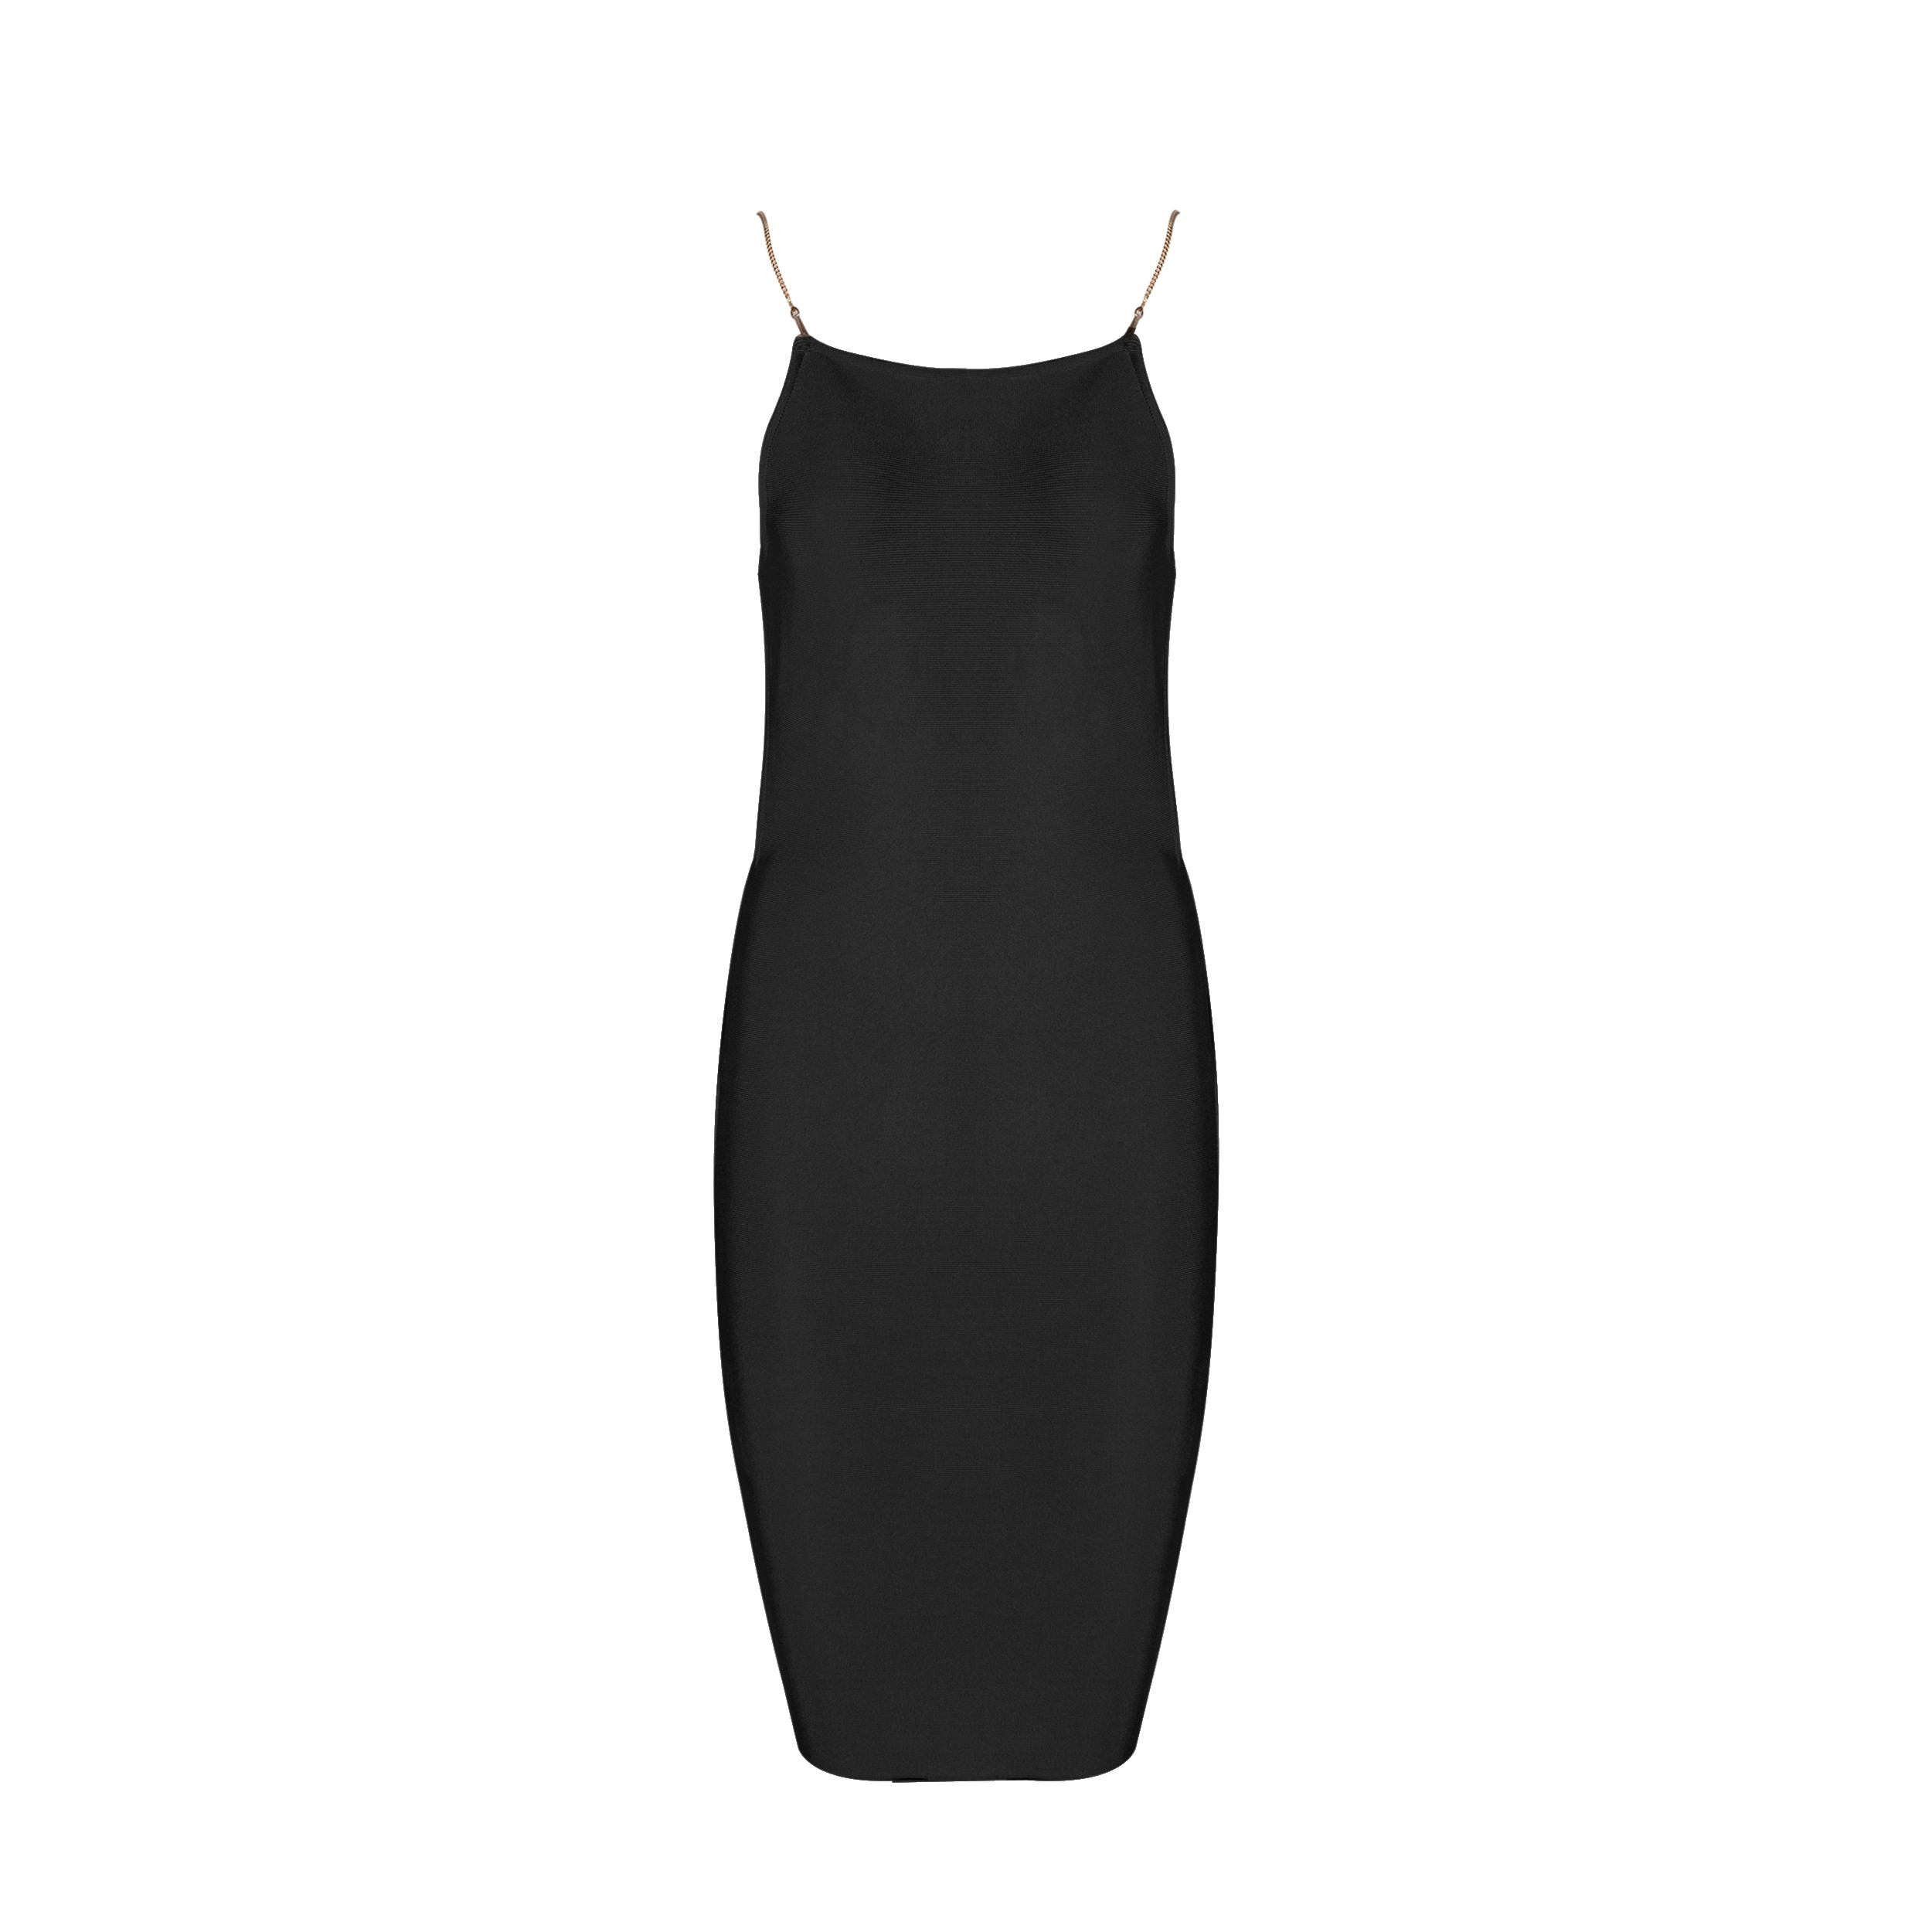 Black Strapy Sleeveless Mini Backless Plain Summer Bandage Dress HB1007-Black